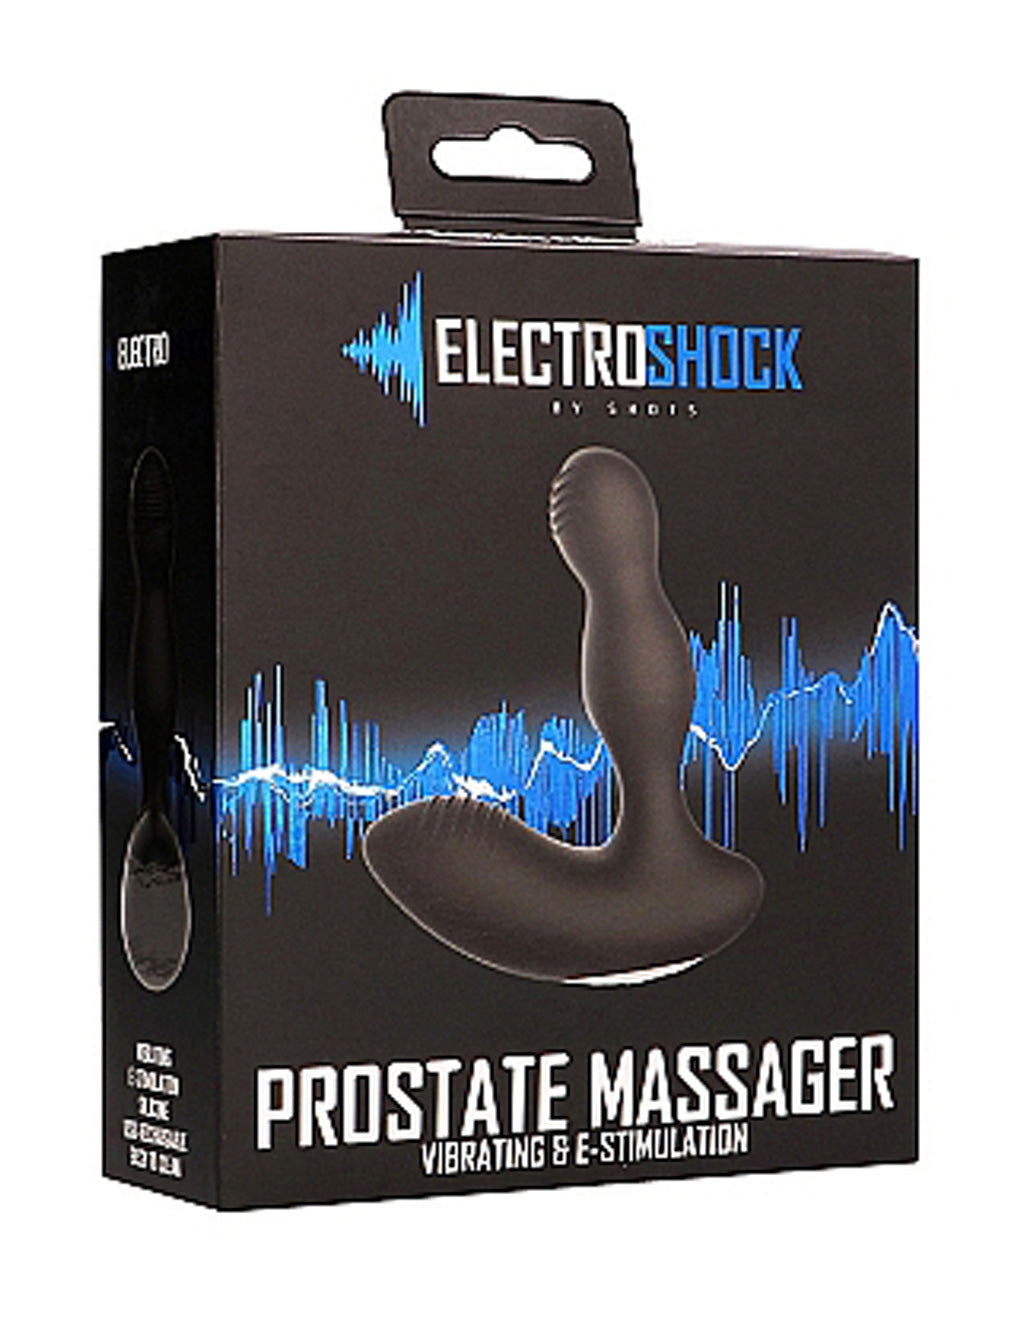 E-Stimulation Vibrating Prostate Massager packaging